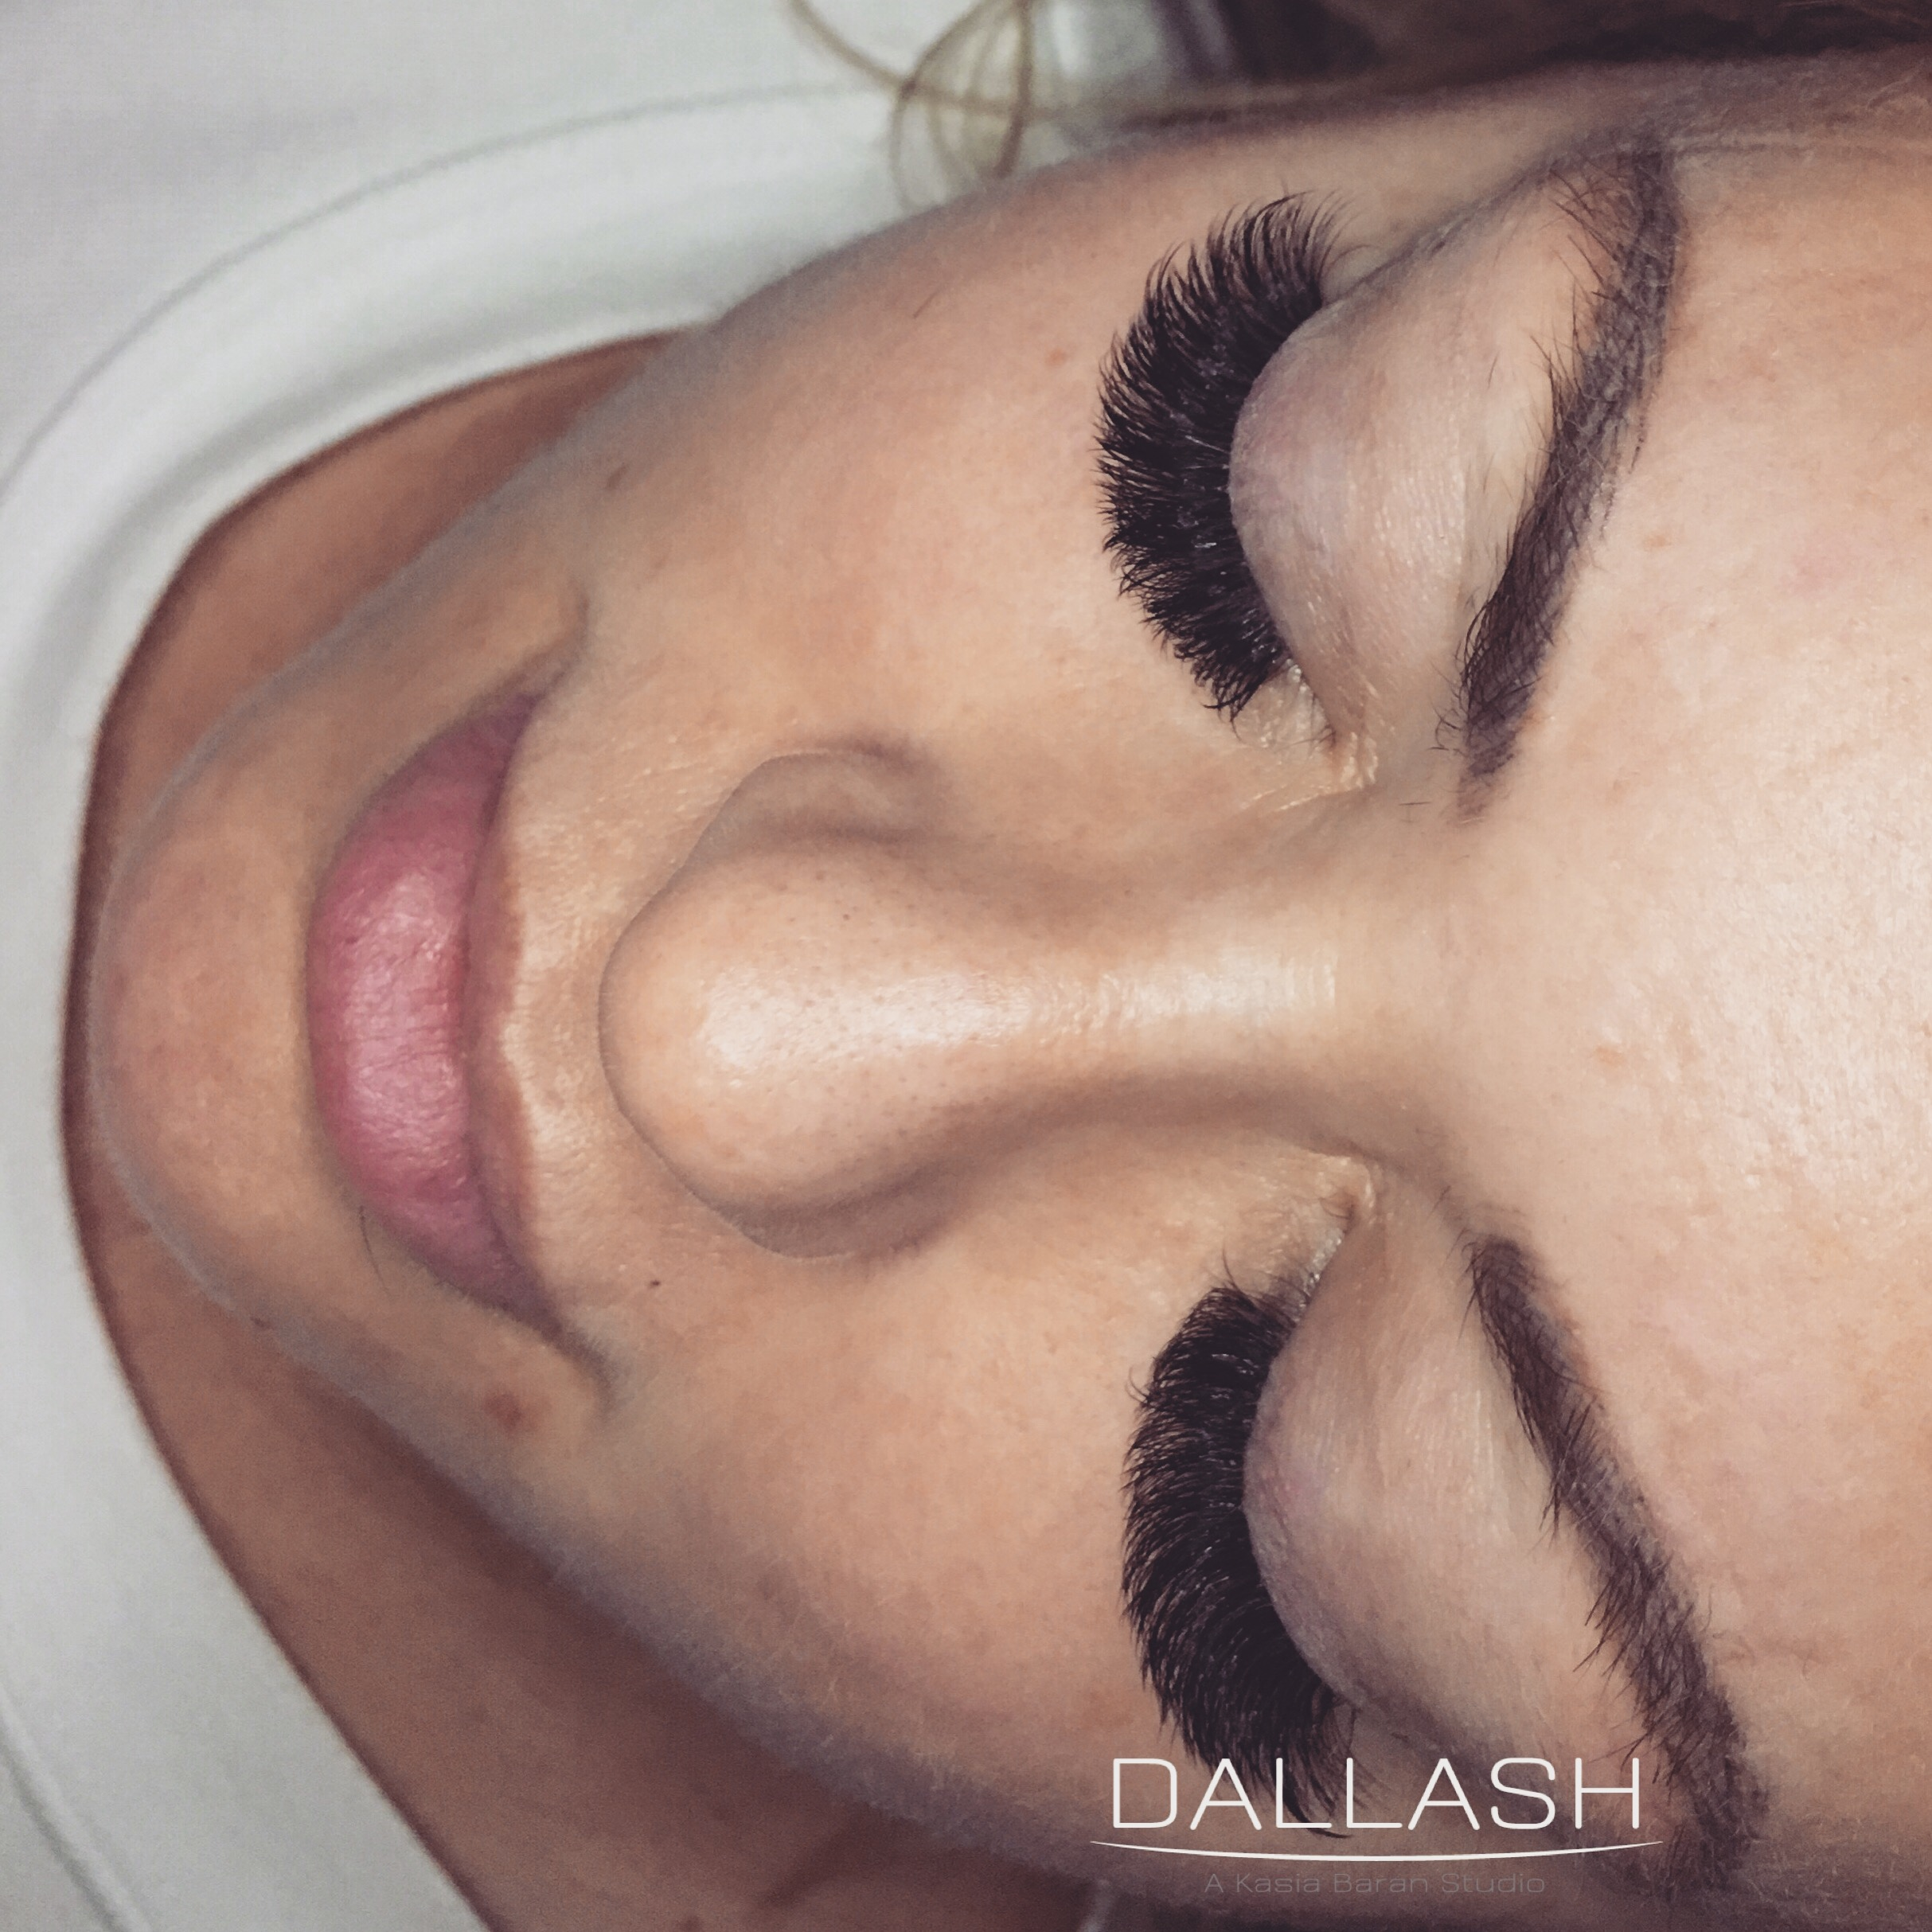 RUSSINA VOLUME Volume lashes-lashes-mega volume-russina volume-dallas lashes- dallash-eyelash extens